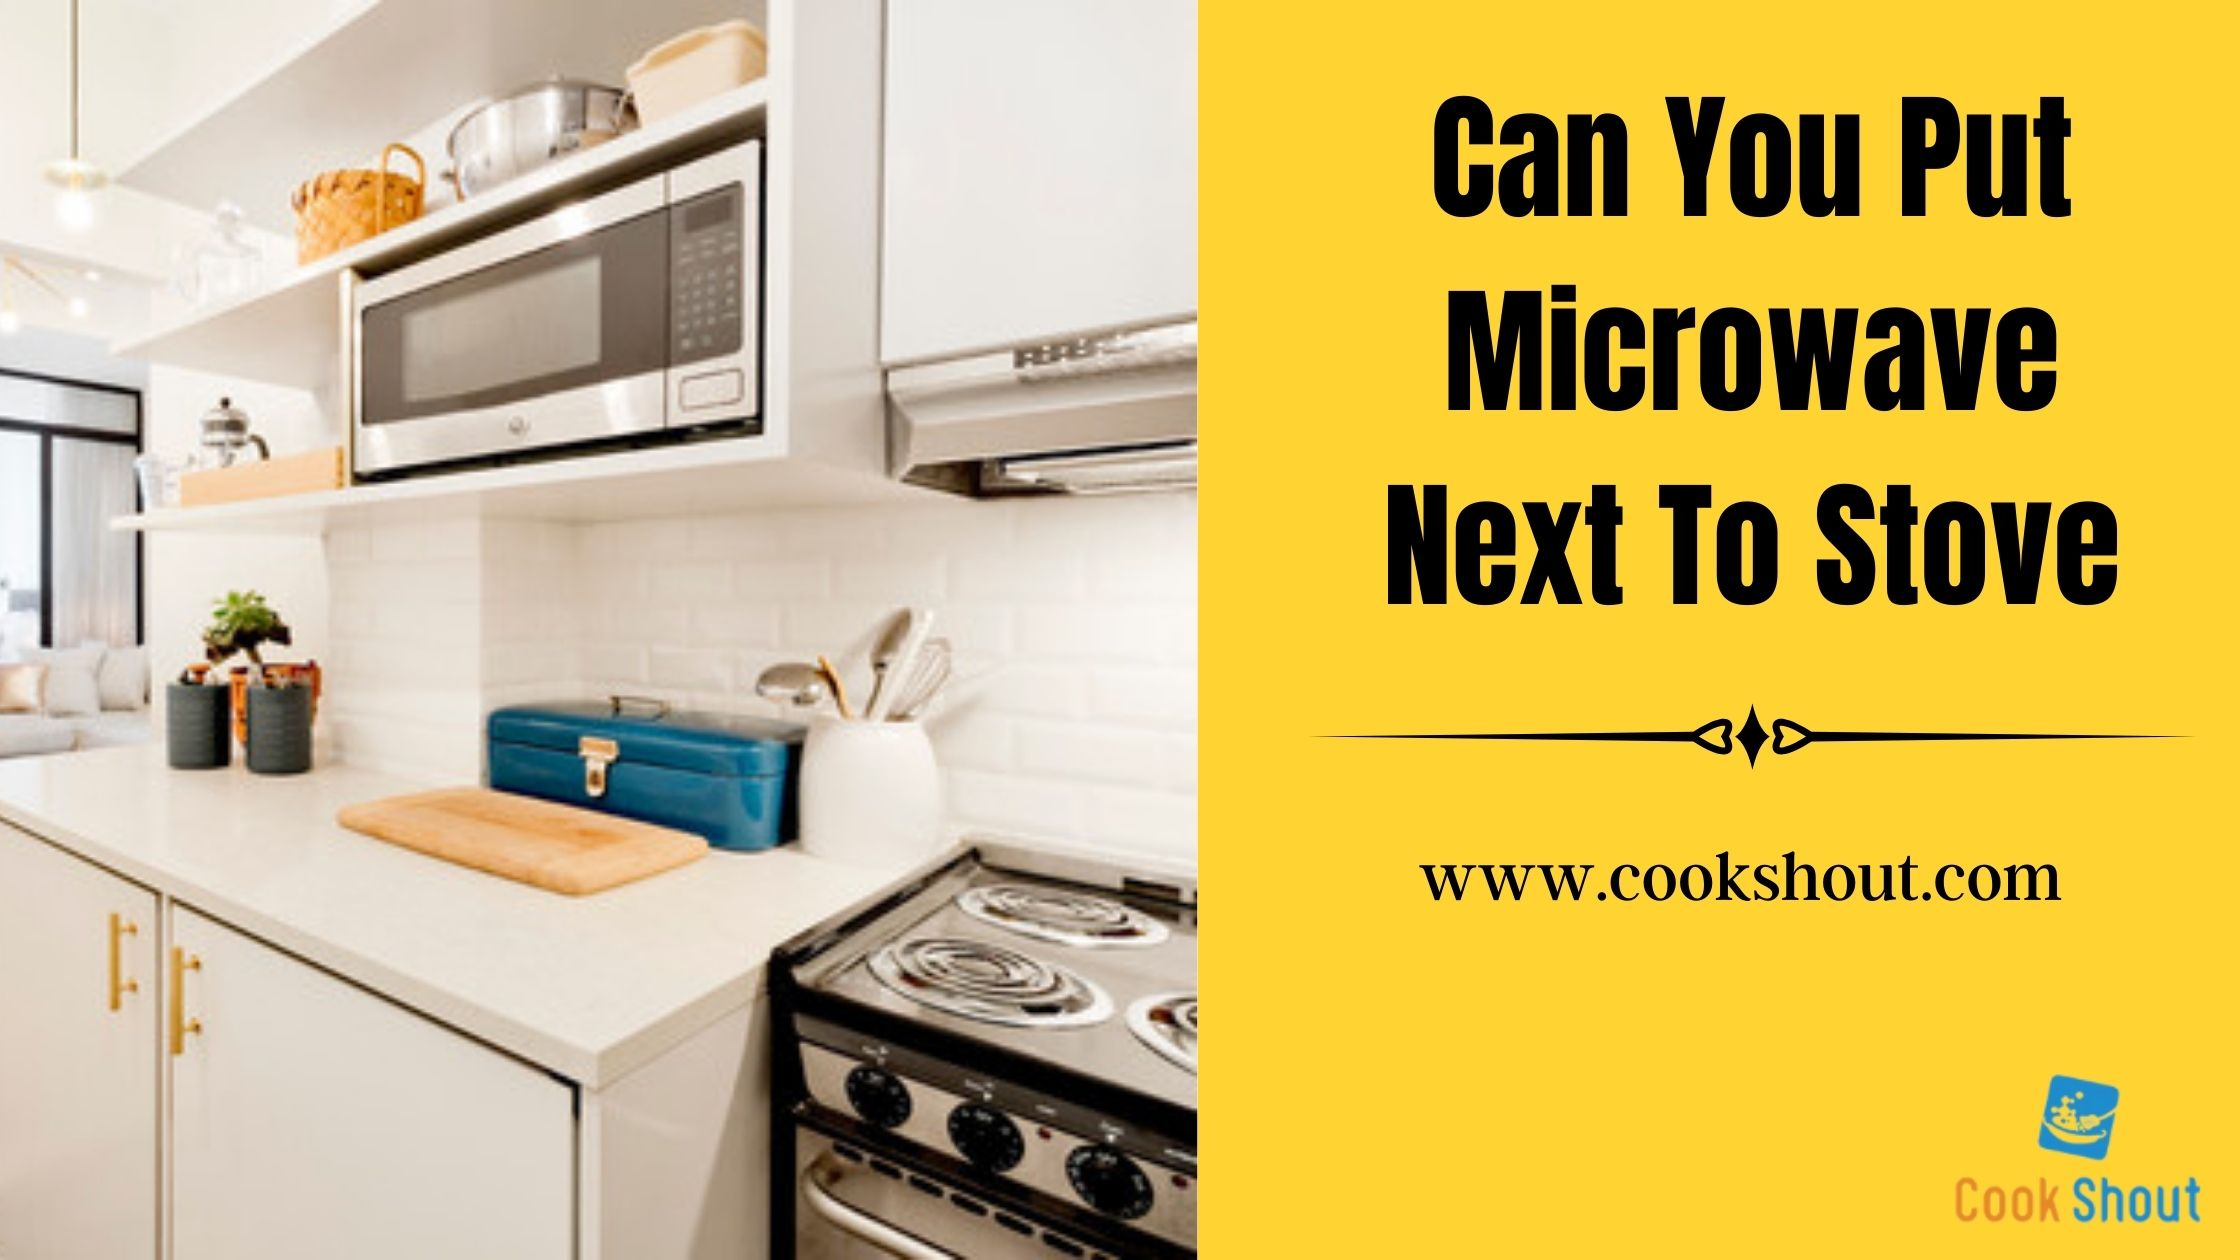 Can You Put Microwave Next To Stove